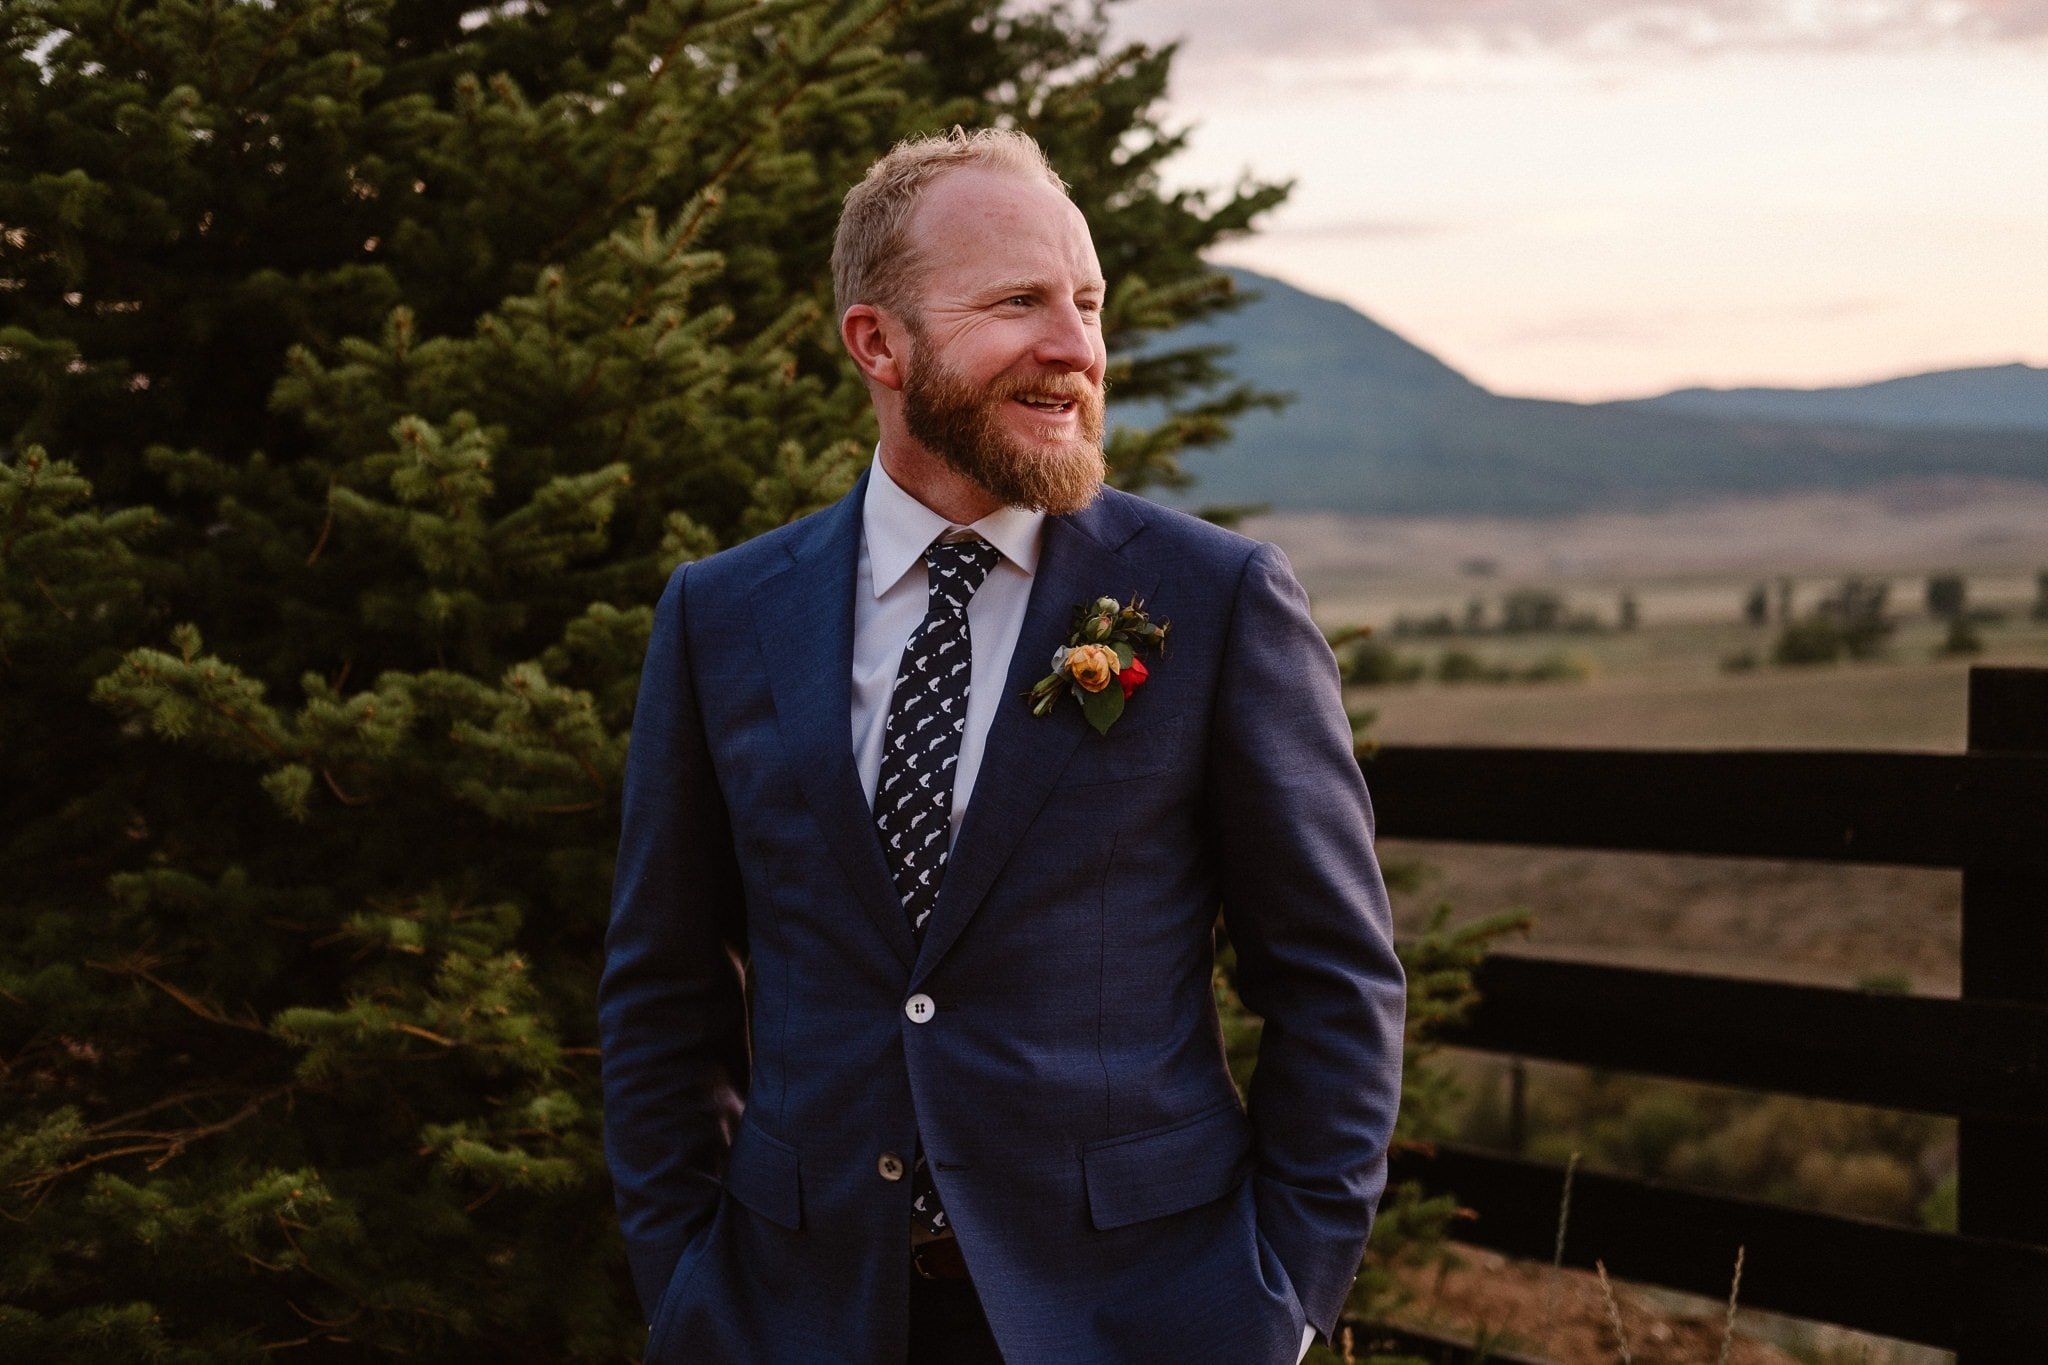 Steamboat Springs wedding photographer, La Joya Dulce wedding, Colorado ranch wedding venues, groom portrait, groom in dark blue dress, groom with fish tie